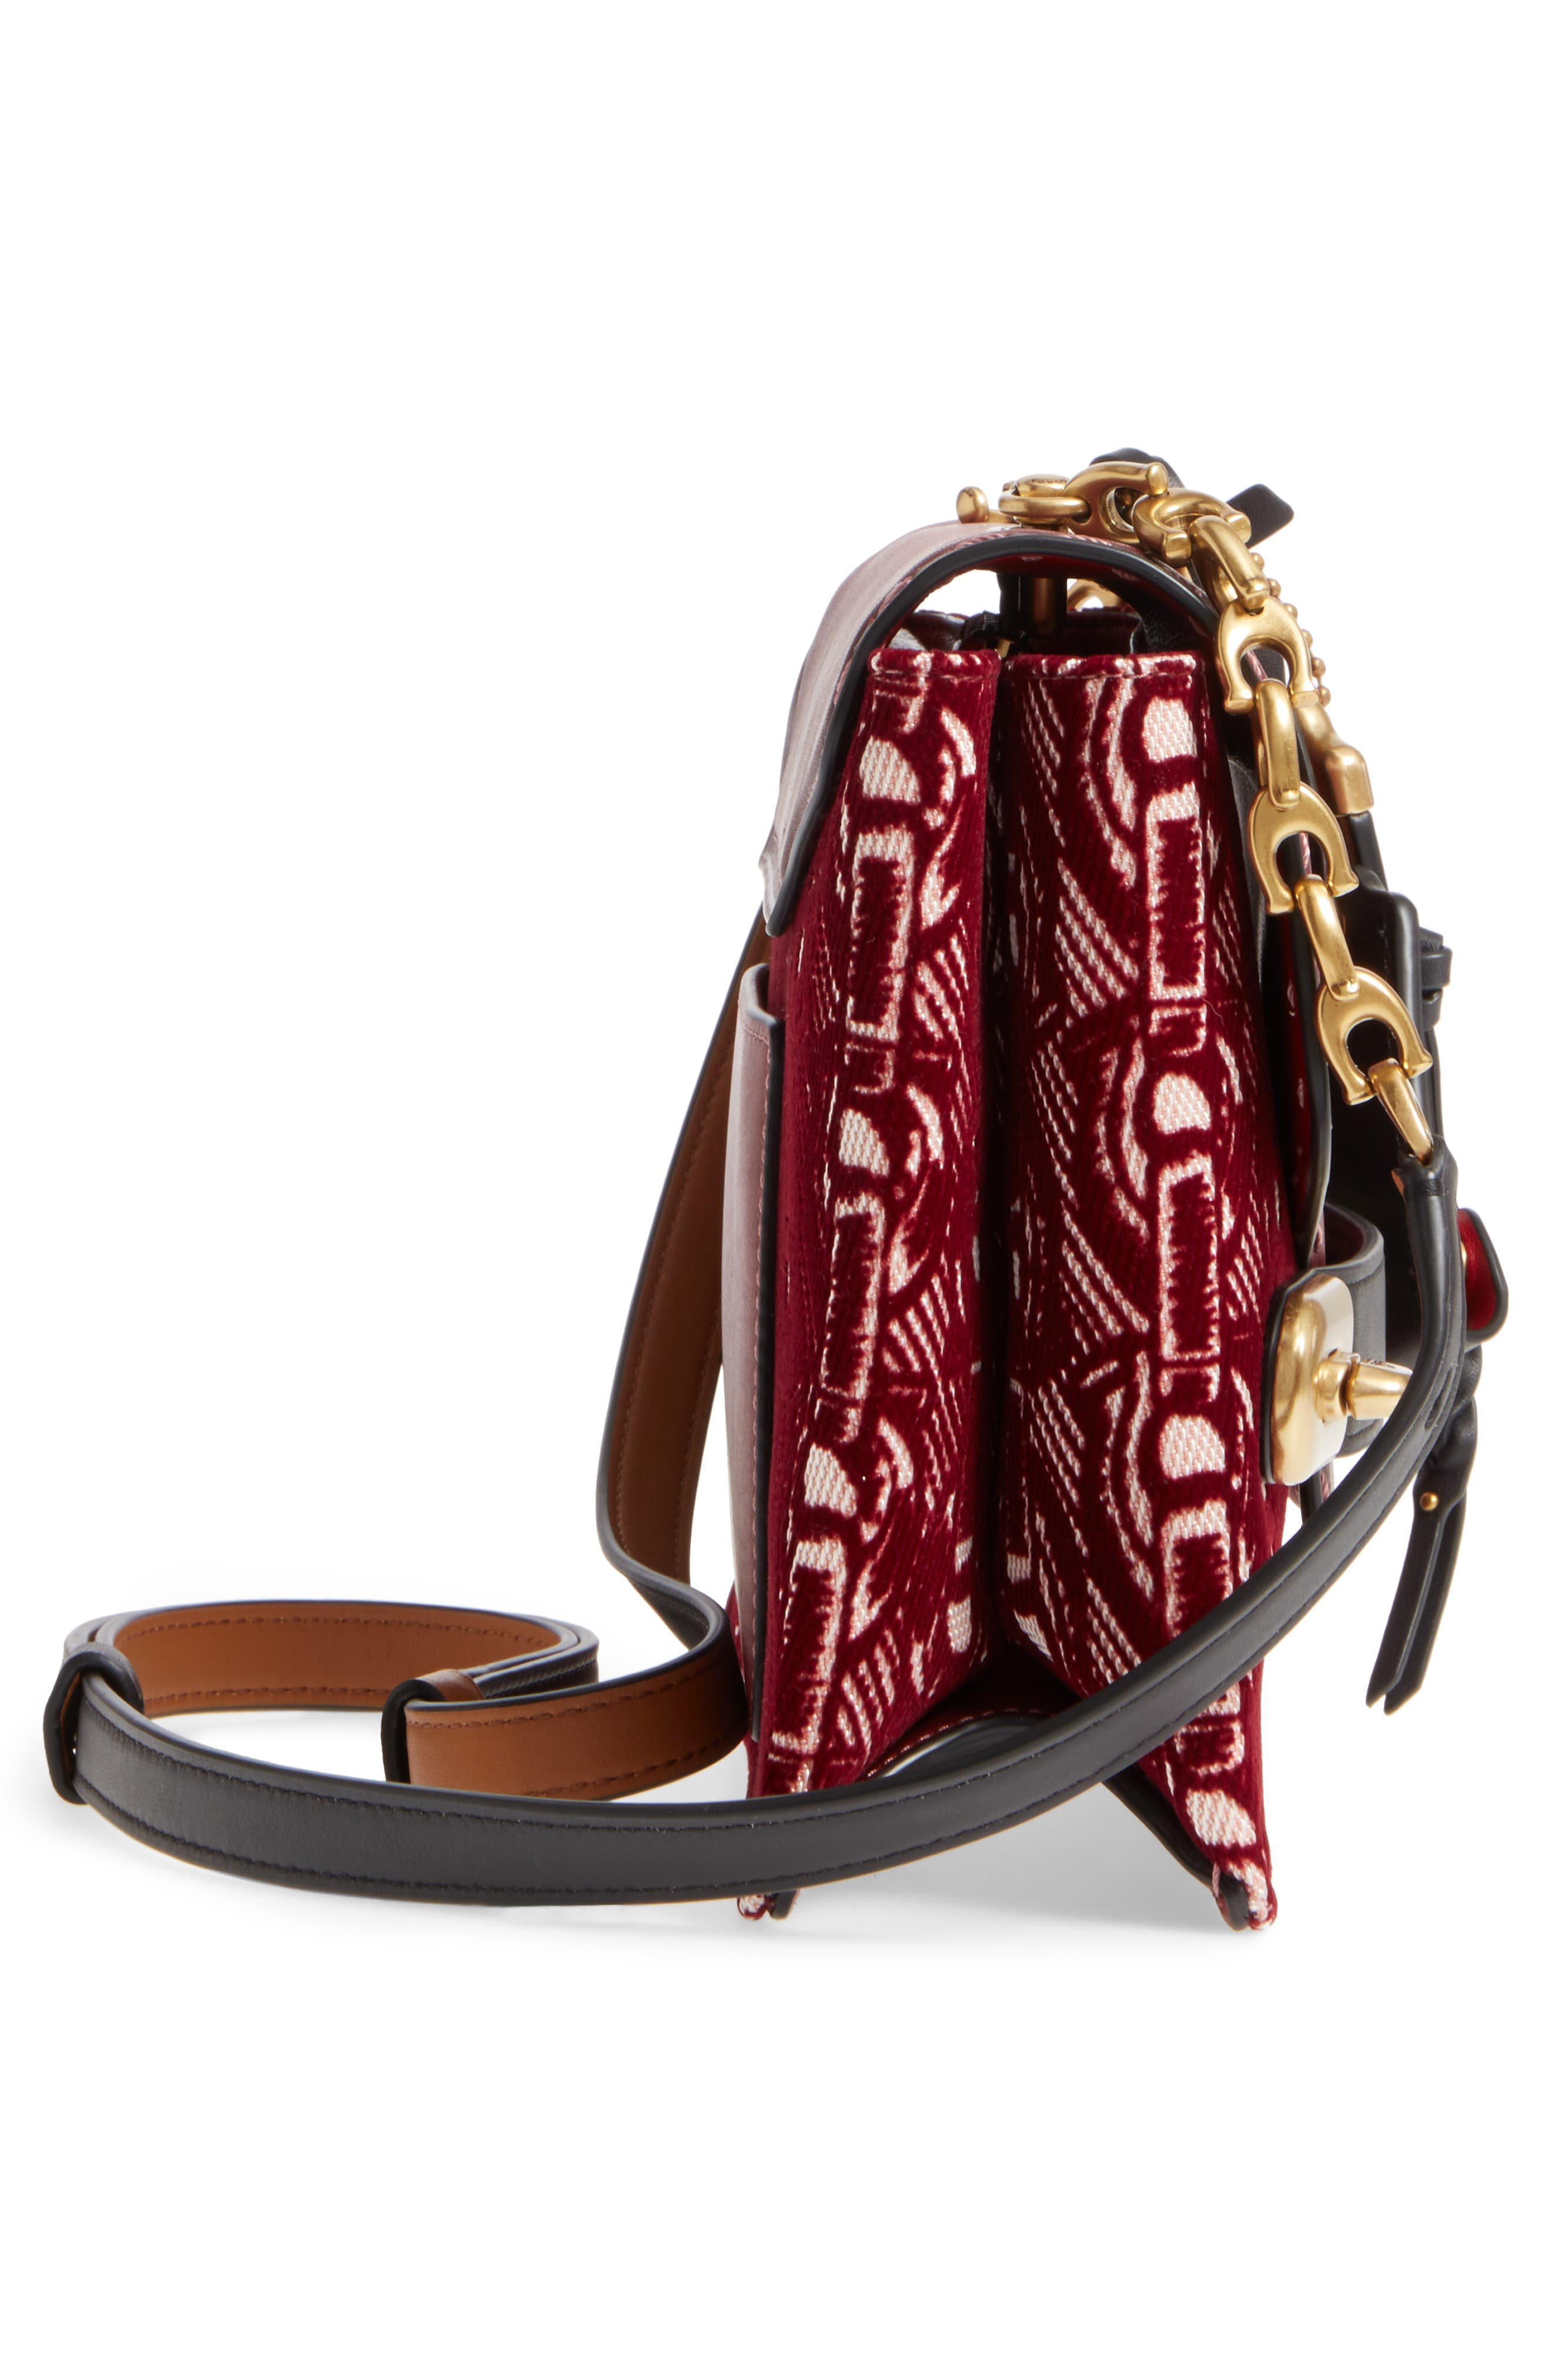 Swagger Chain Leather Crossbody Bag,                             Alternate thumbnail 5, color,                             930